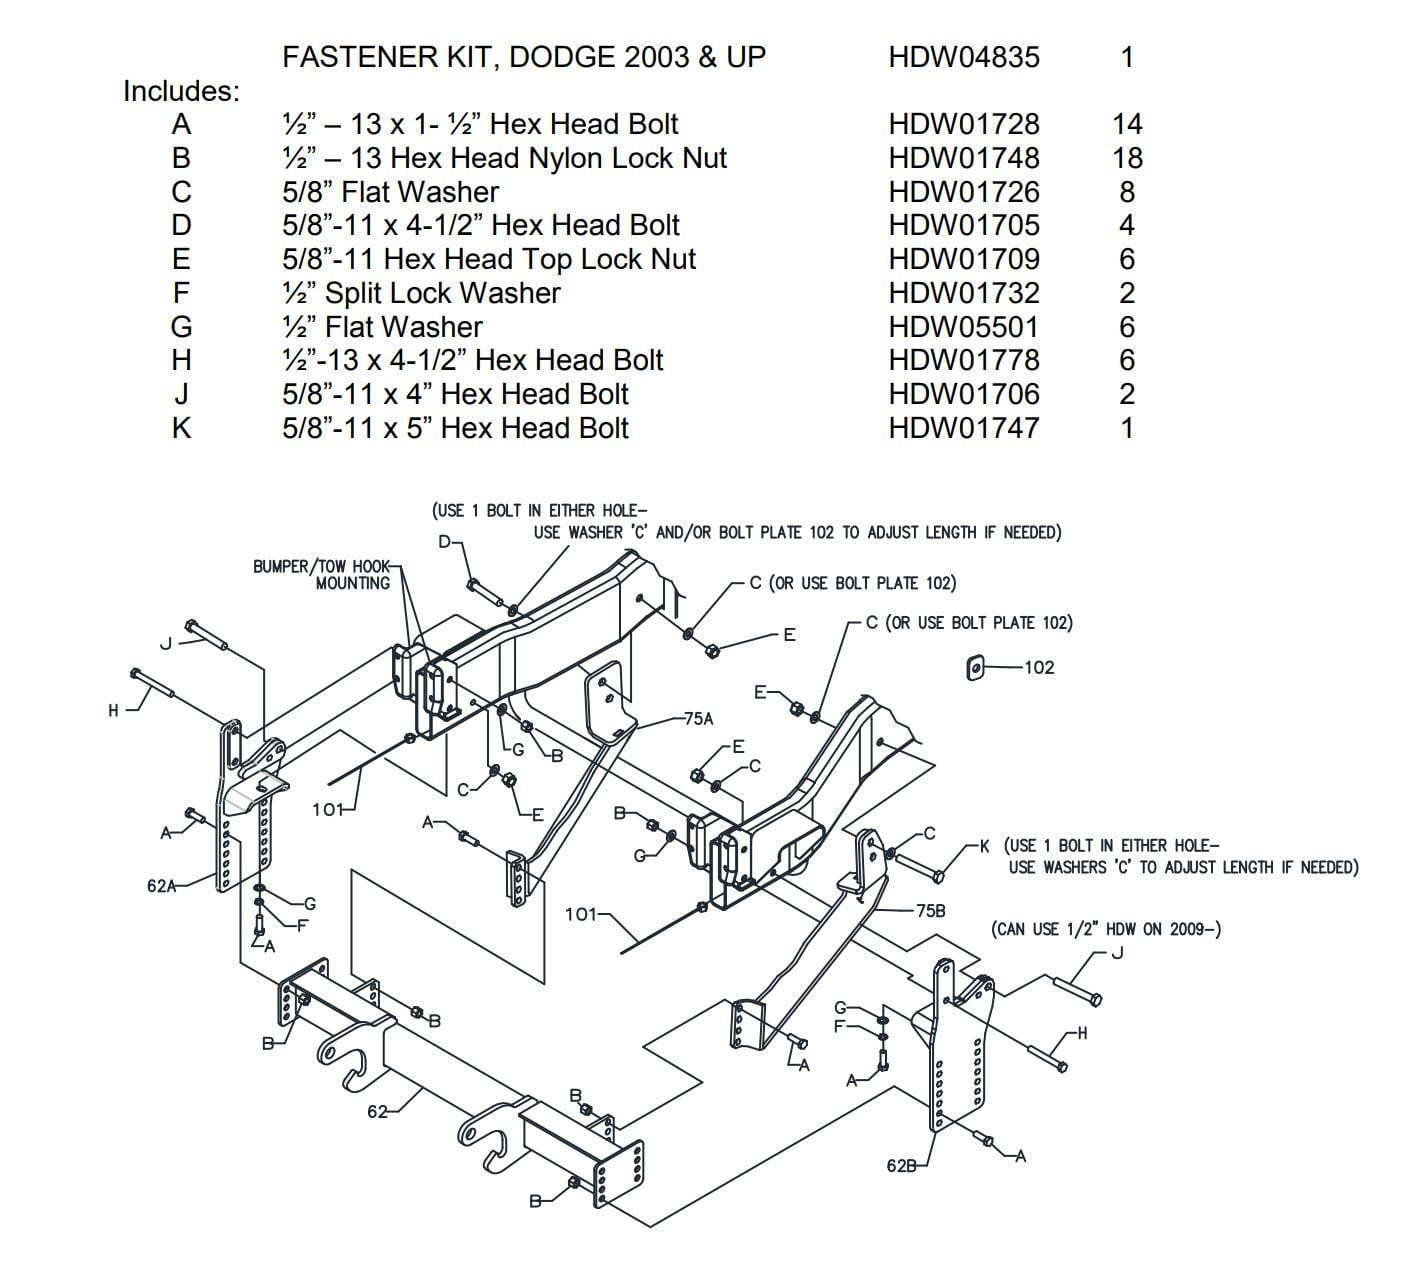 Boss Plow Rt3 Wiring Diagram For Droping Library V 1996 Ford Part Hdw04835 Undercarriage Hardware Fastener Kit Dodge 2003 Up 3